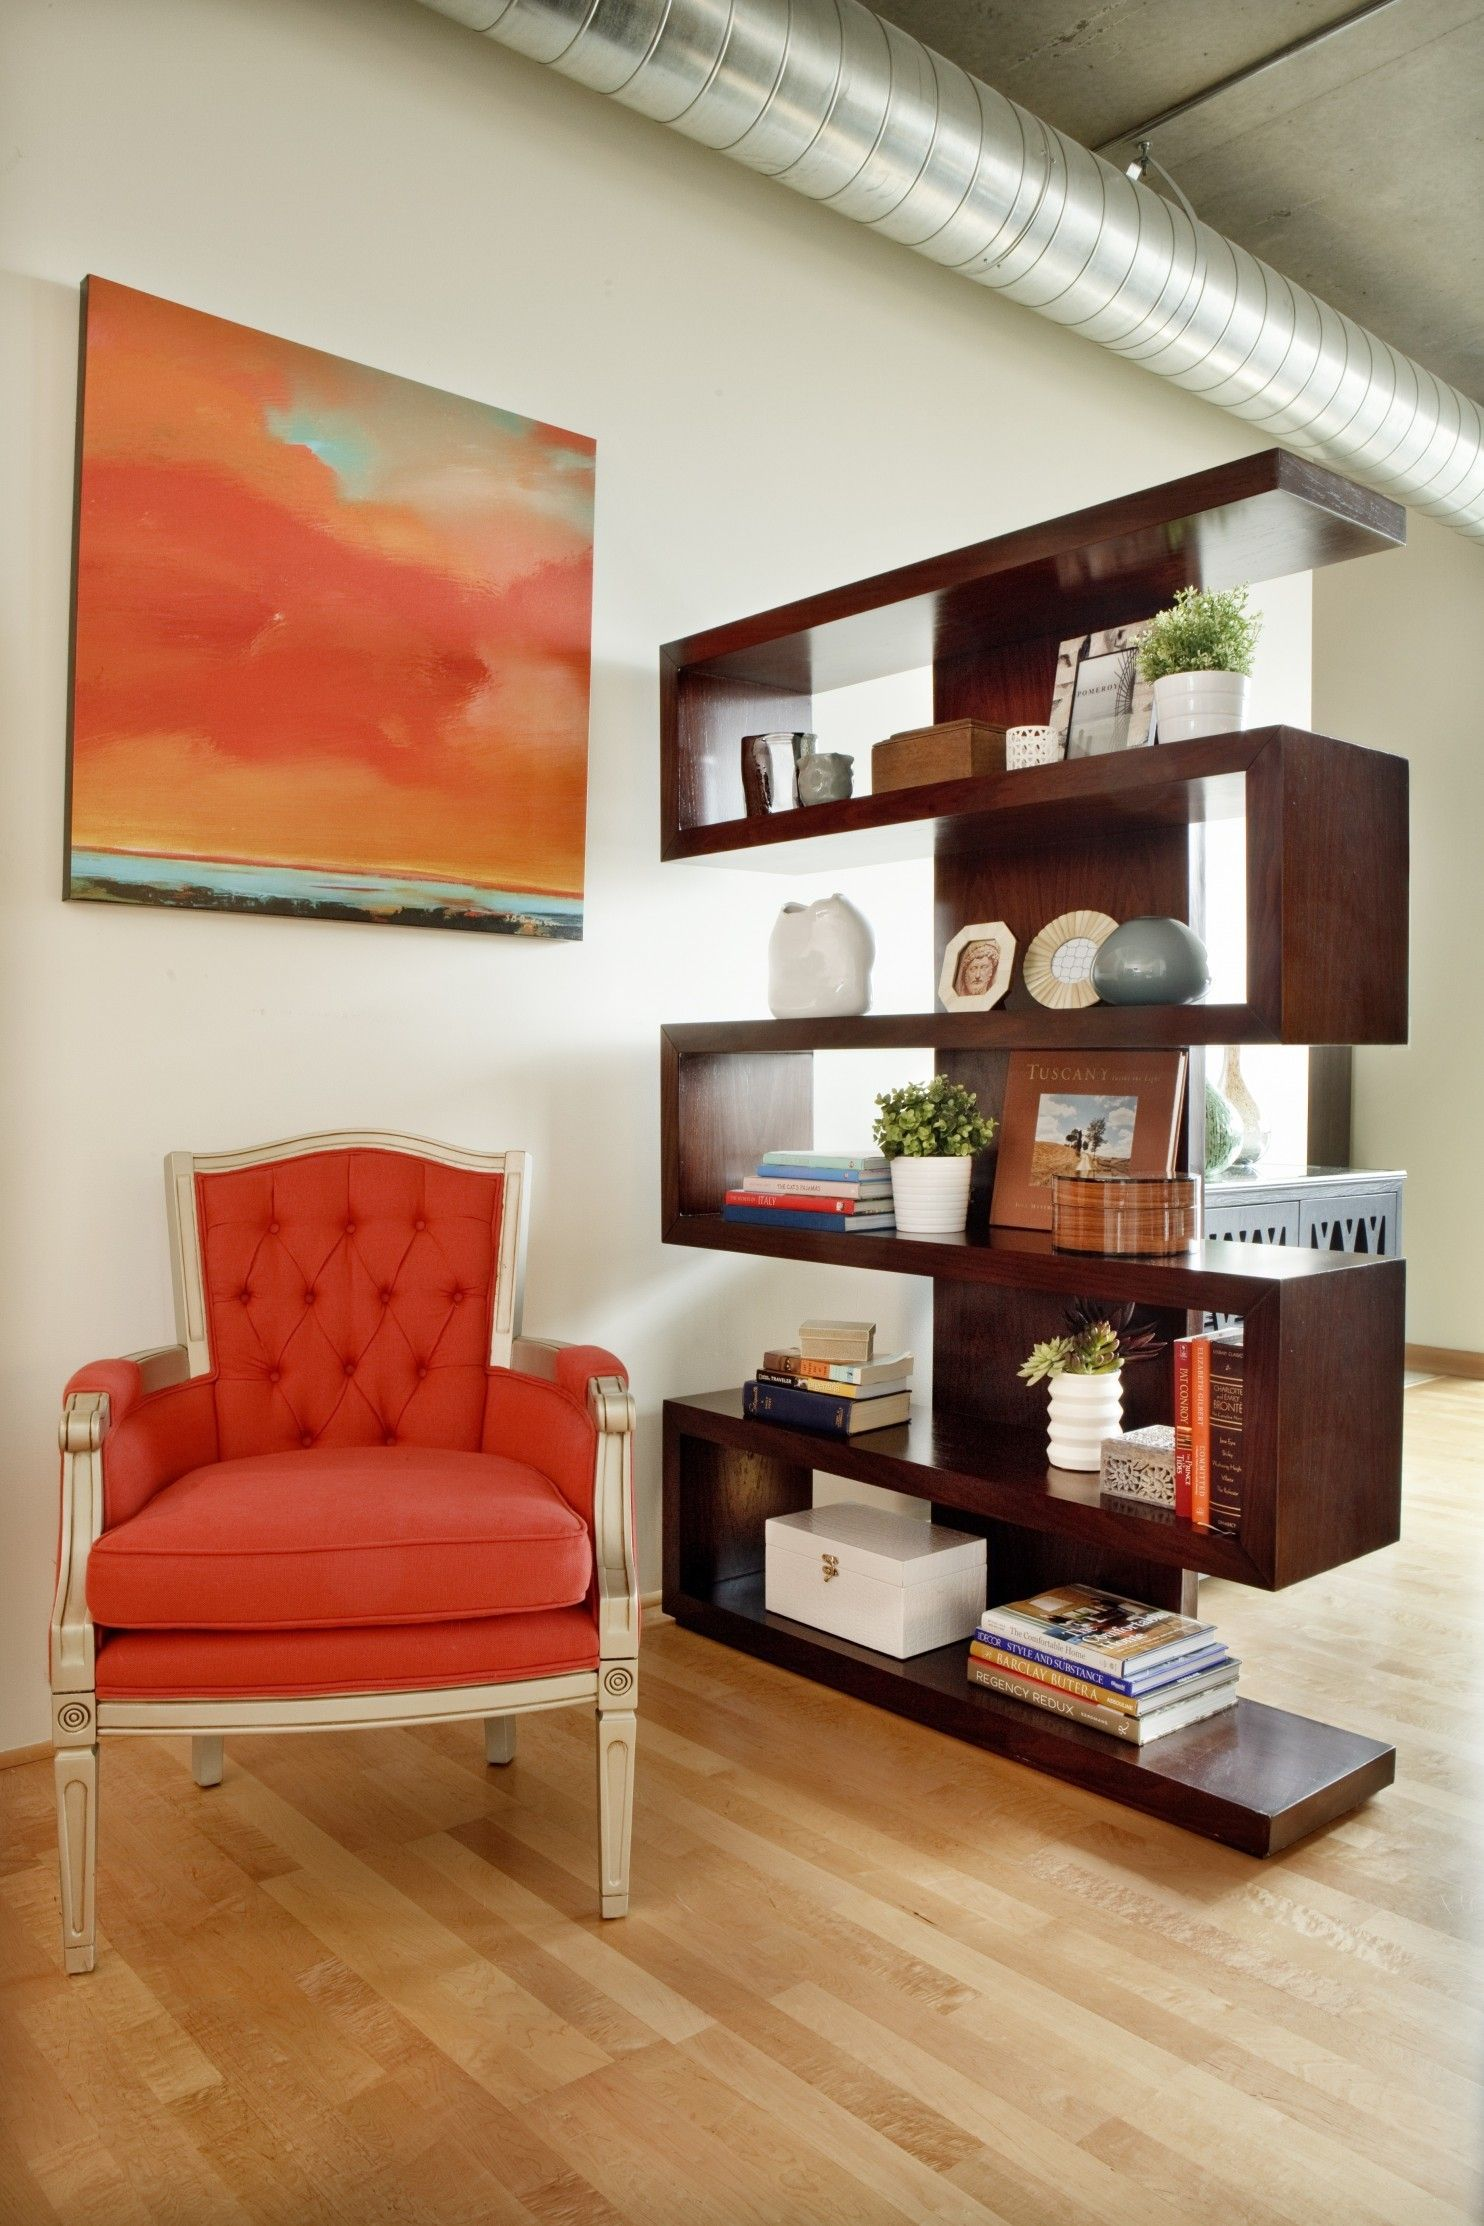 Small-space living: Room dividers that can save studios and open-concept spaces - The Washington Post